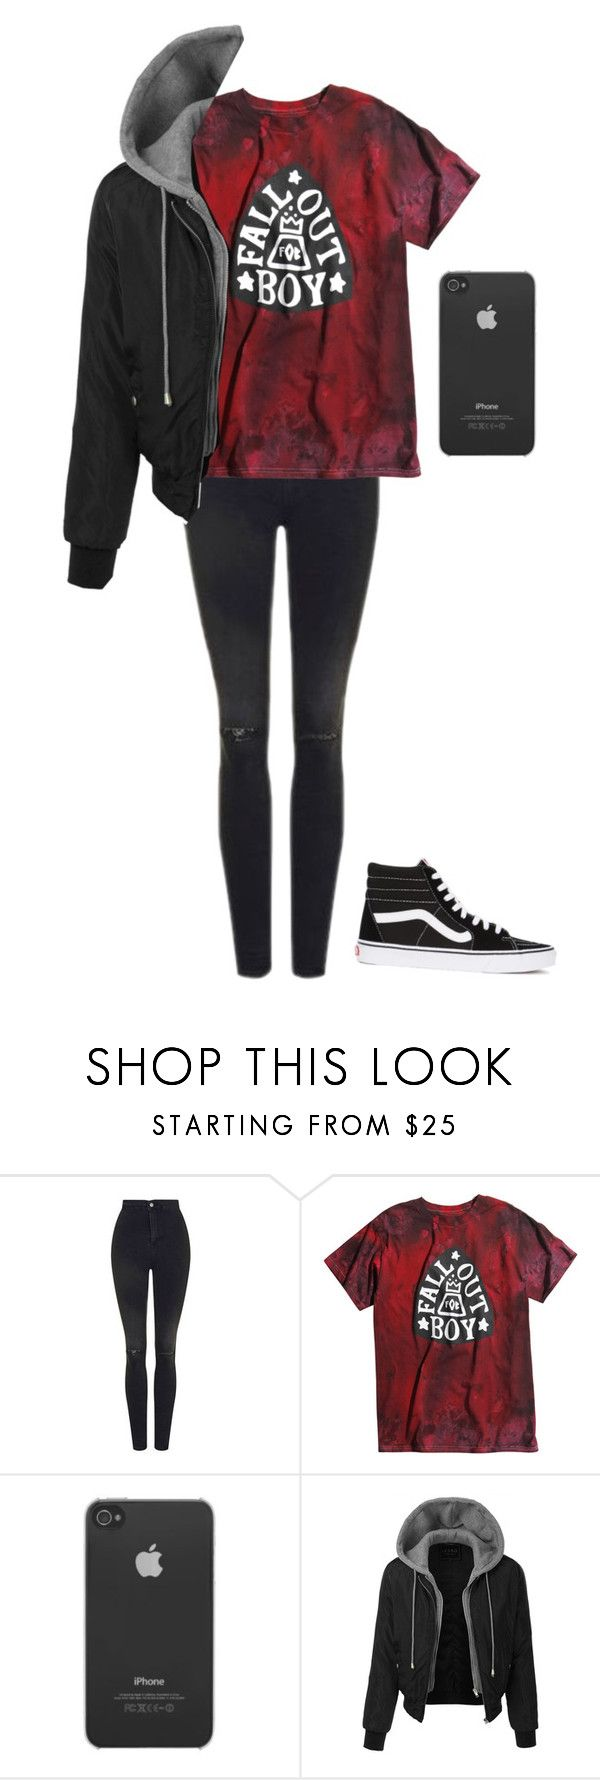 """""""masculine band tee outfit"""" by addict-with-a-cas ❤ liked on Polyvore featuring Topshop, Incase, LE3NO and Vans"""